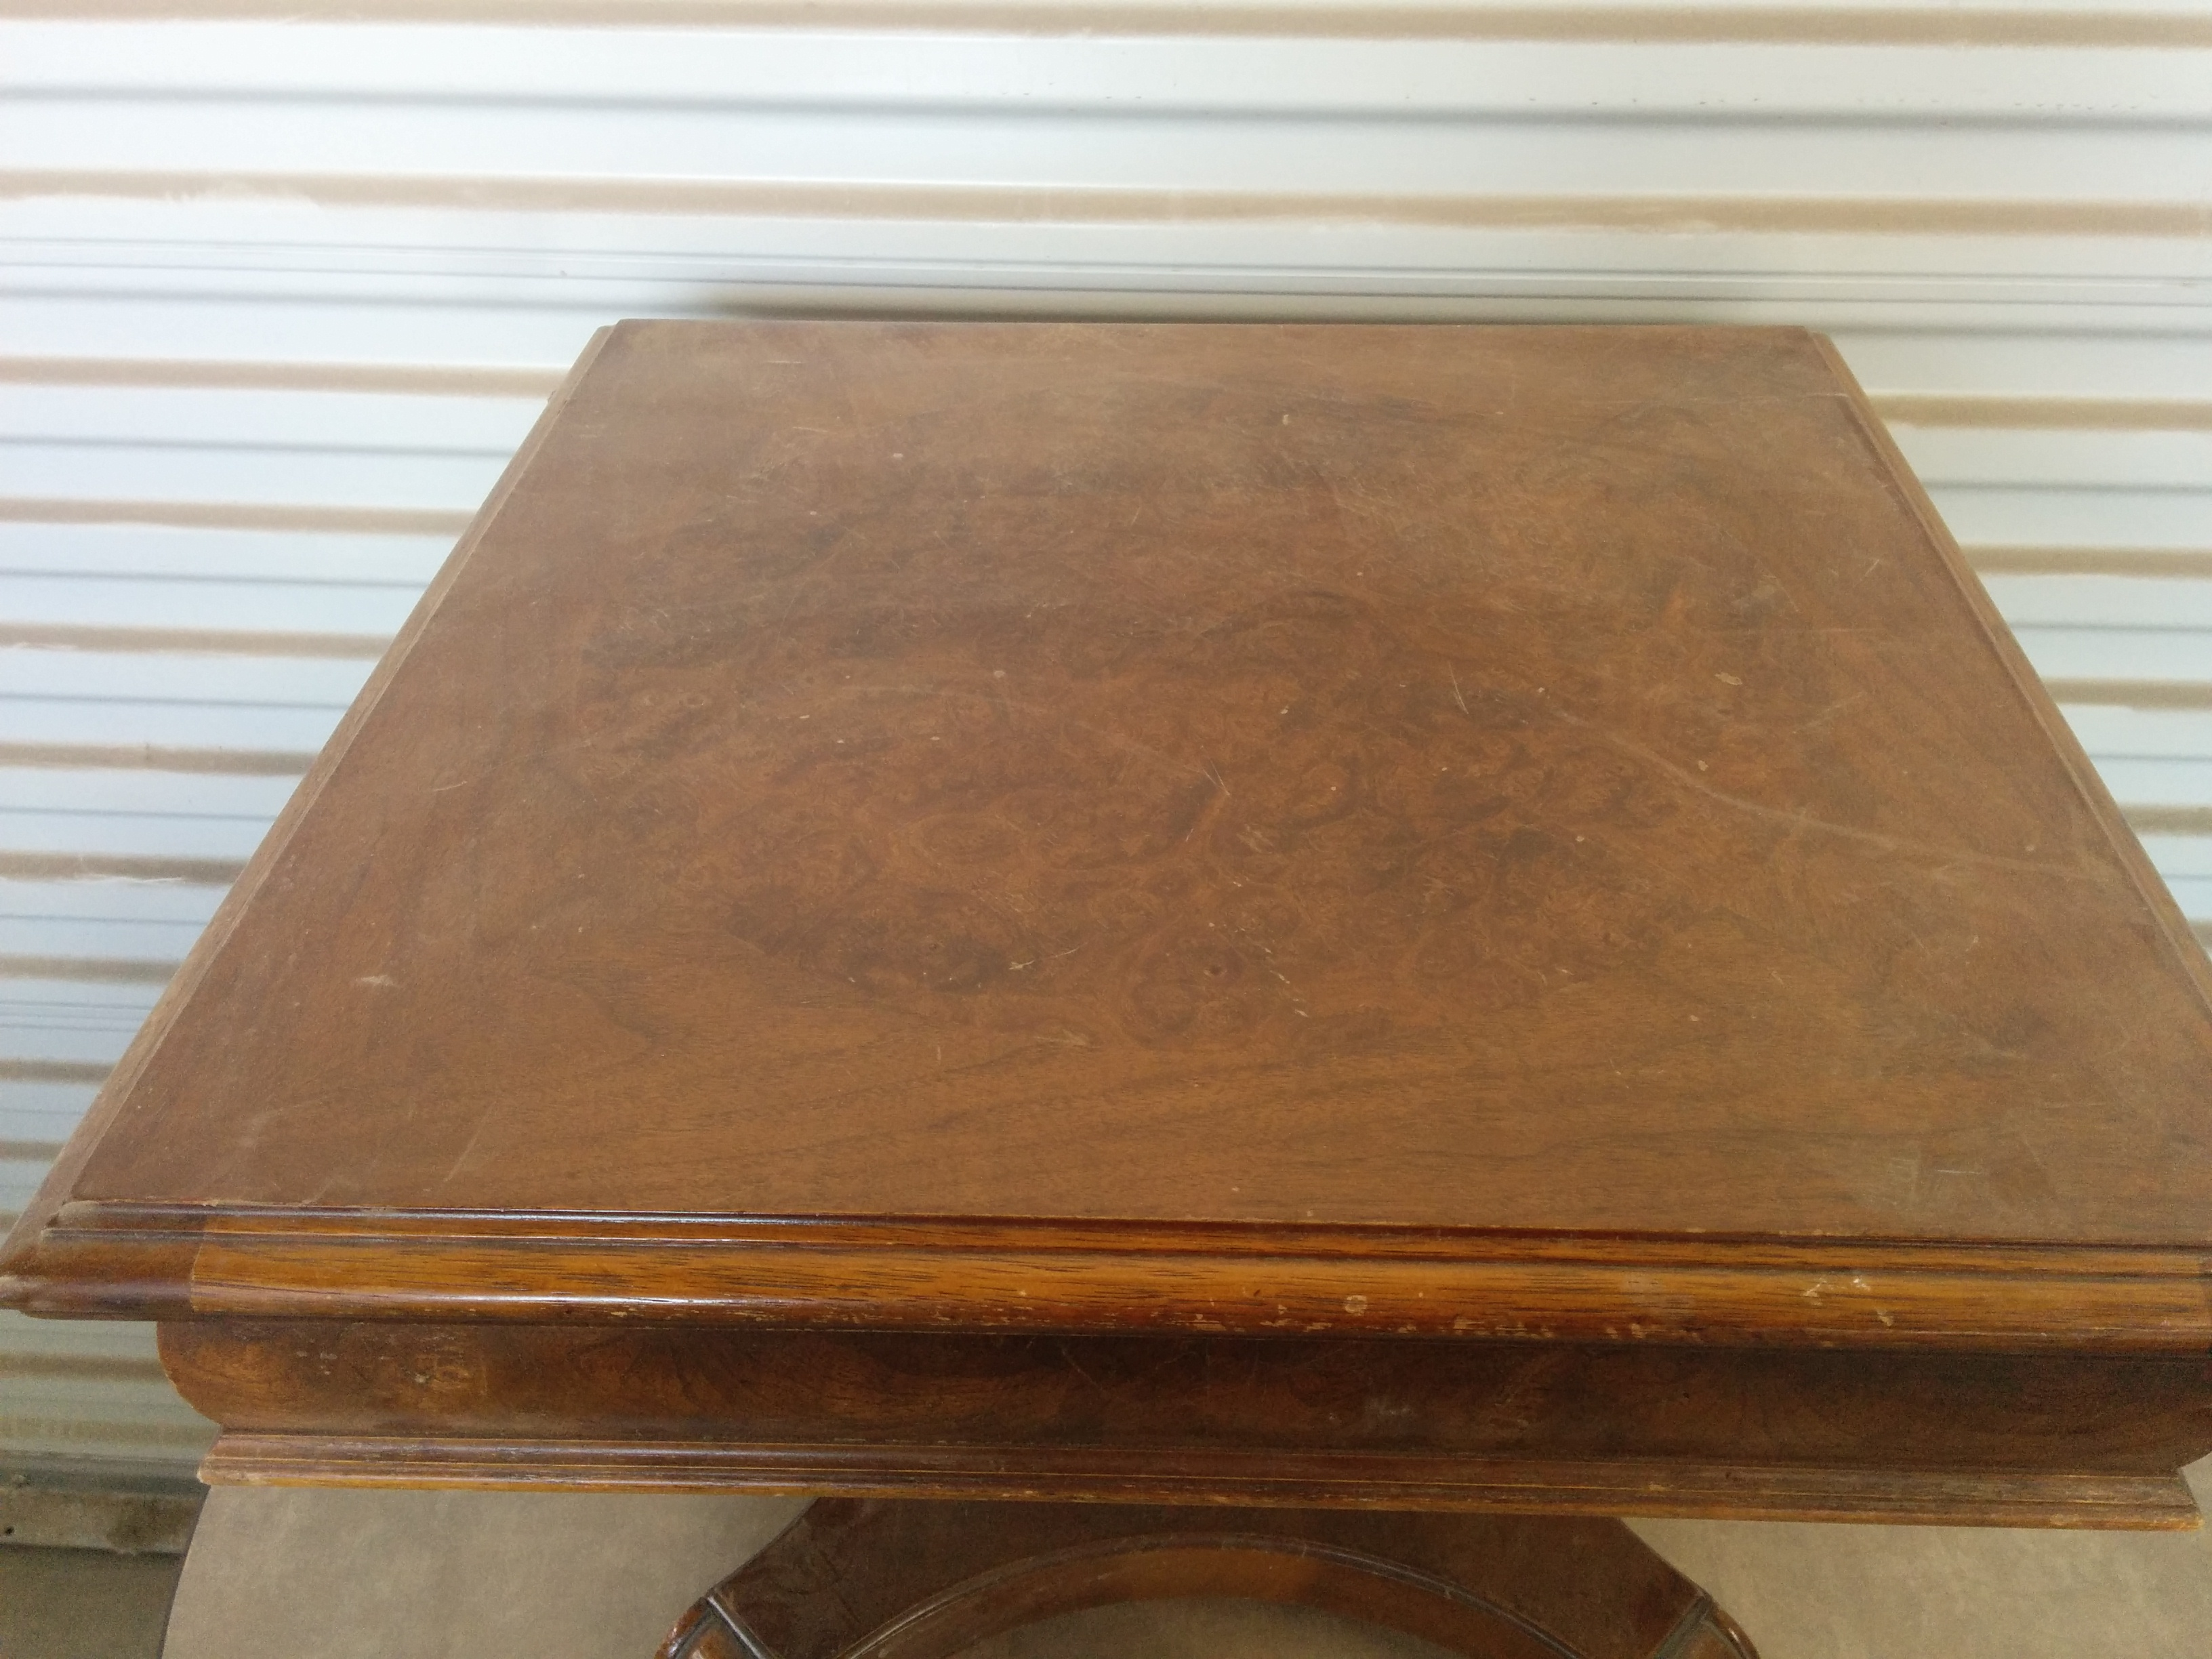 SOLD 0656 Small Thomasville Coffee Table $5 OBO – jennijunk